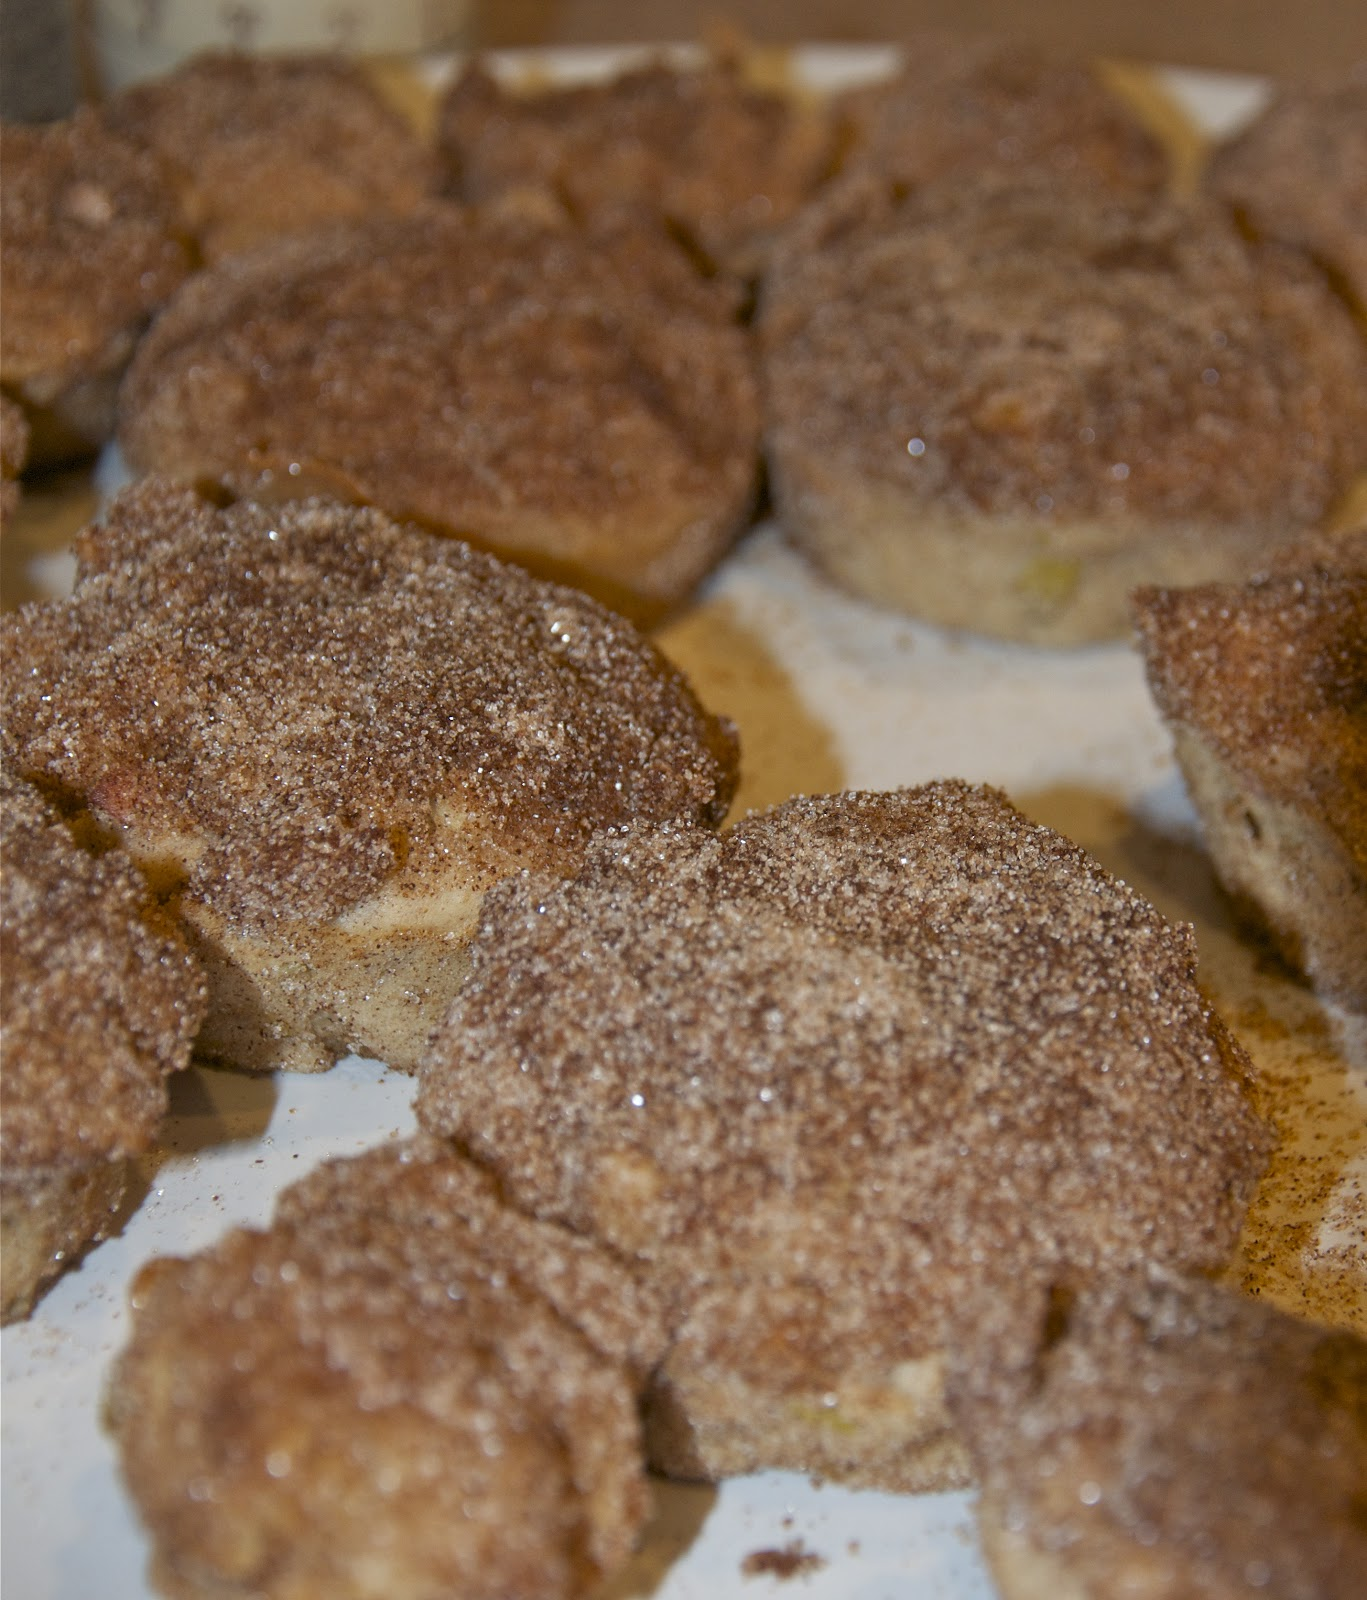 A Day in a Life: Bake Apple Fritter Muffins